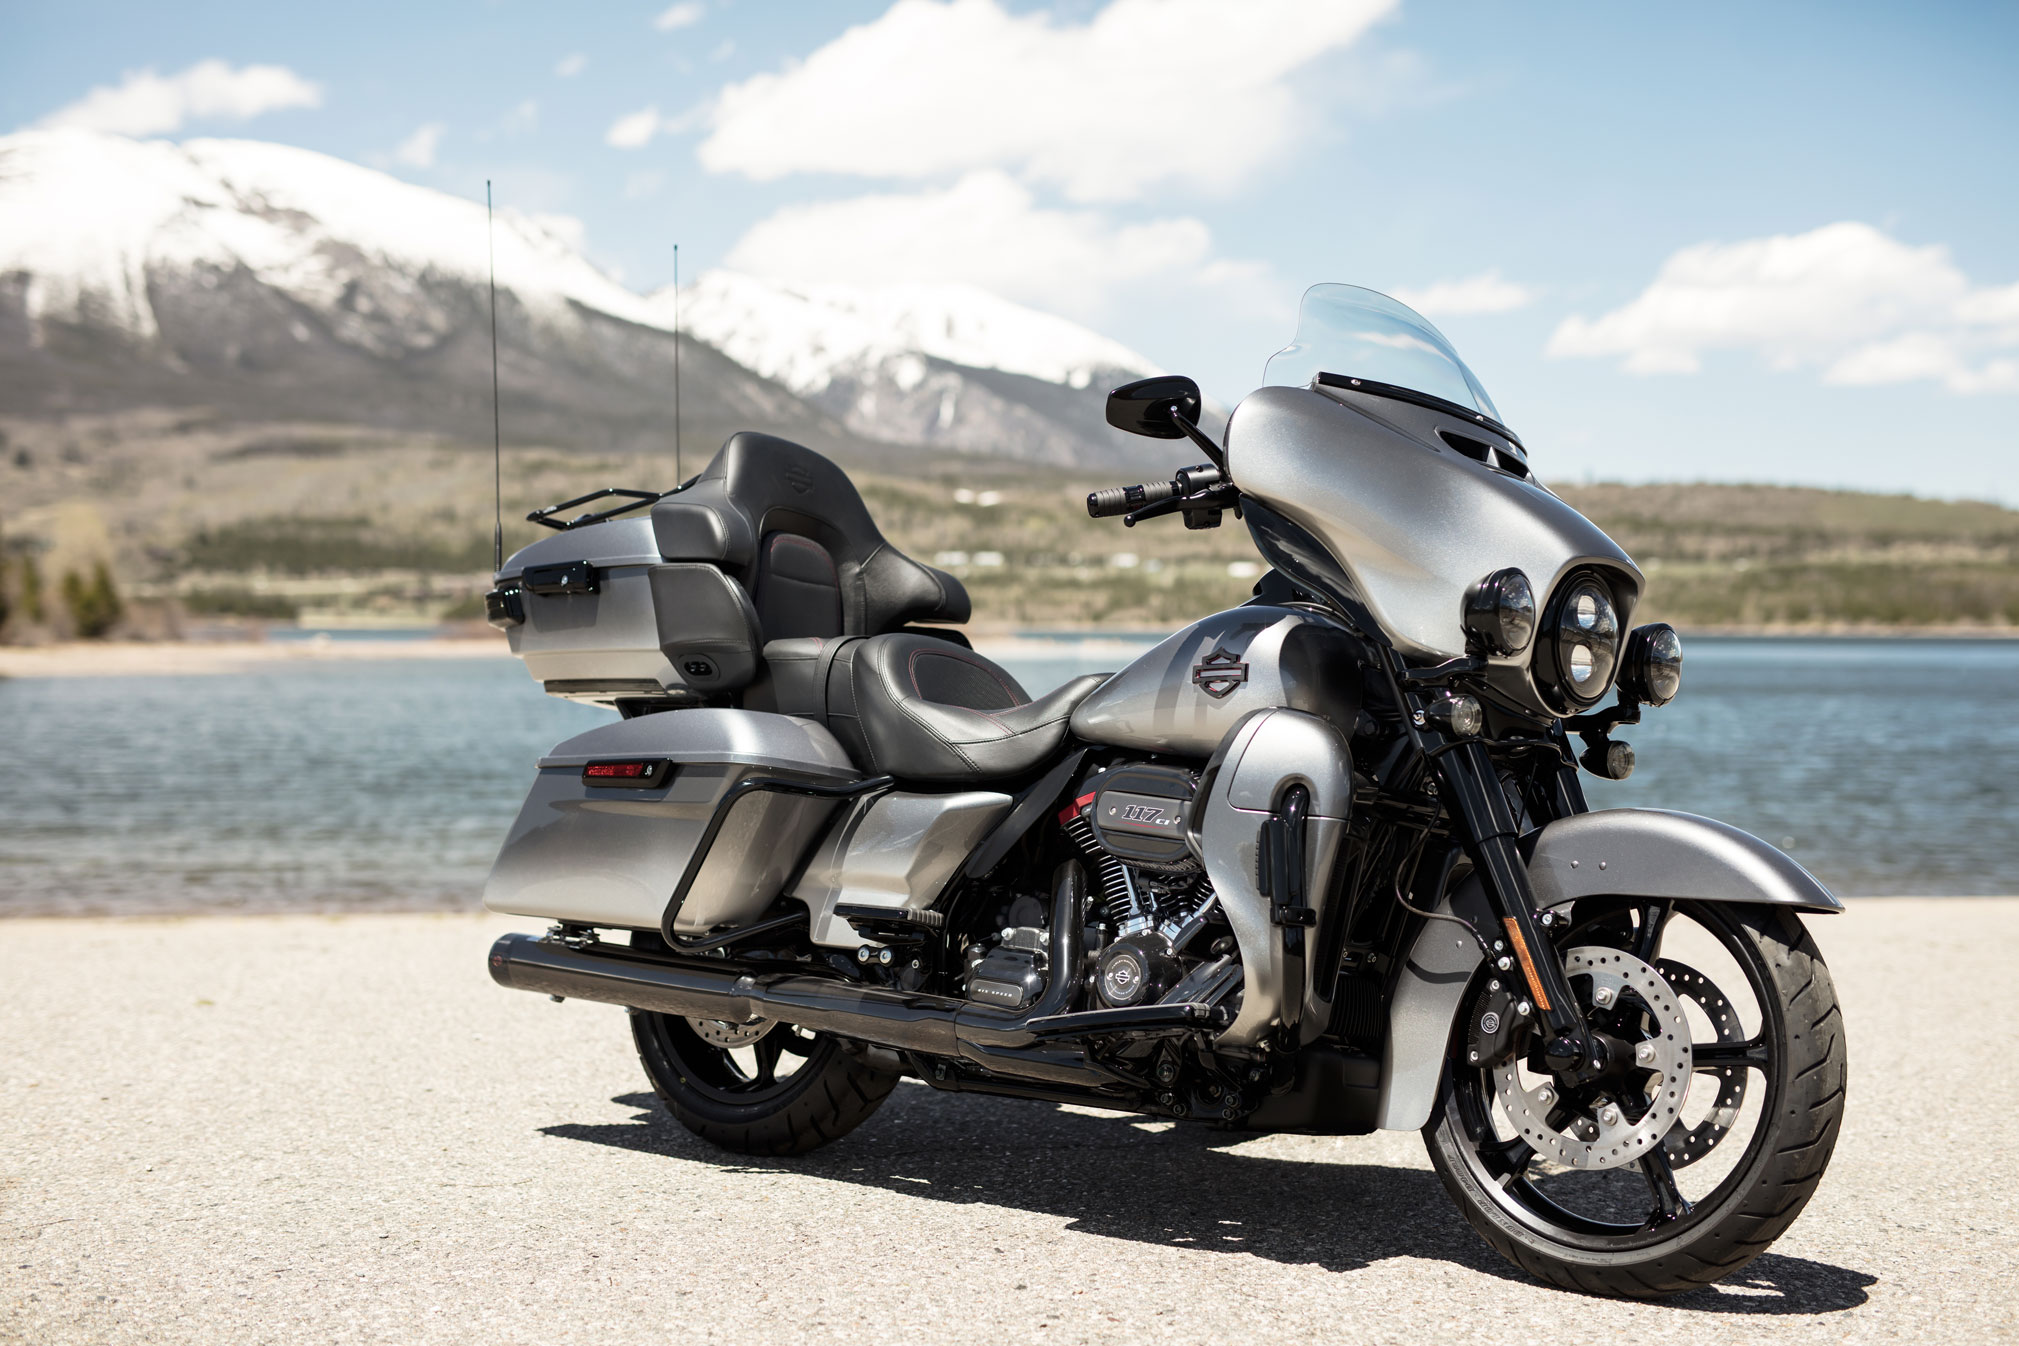 2019 Harely-Davidson Touring Test Ride and Win a Dream Adventure